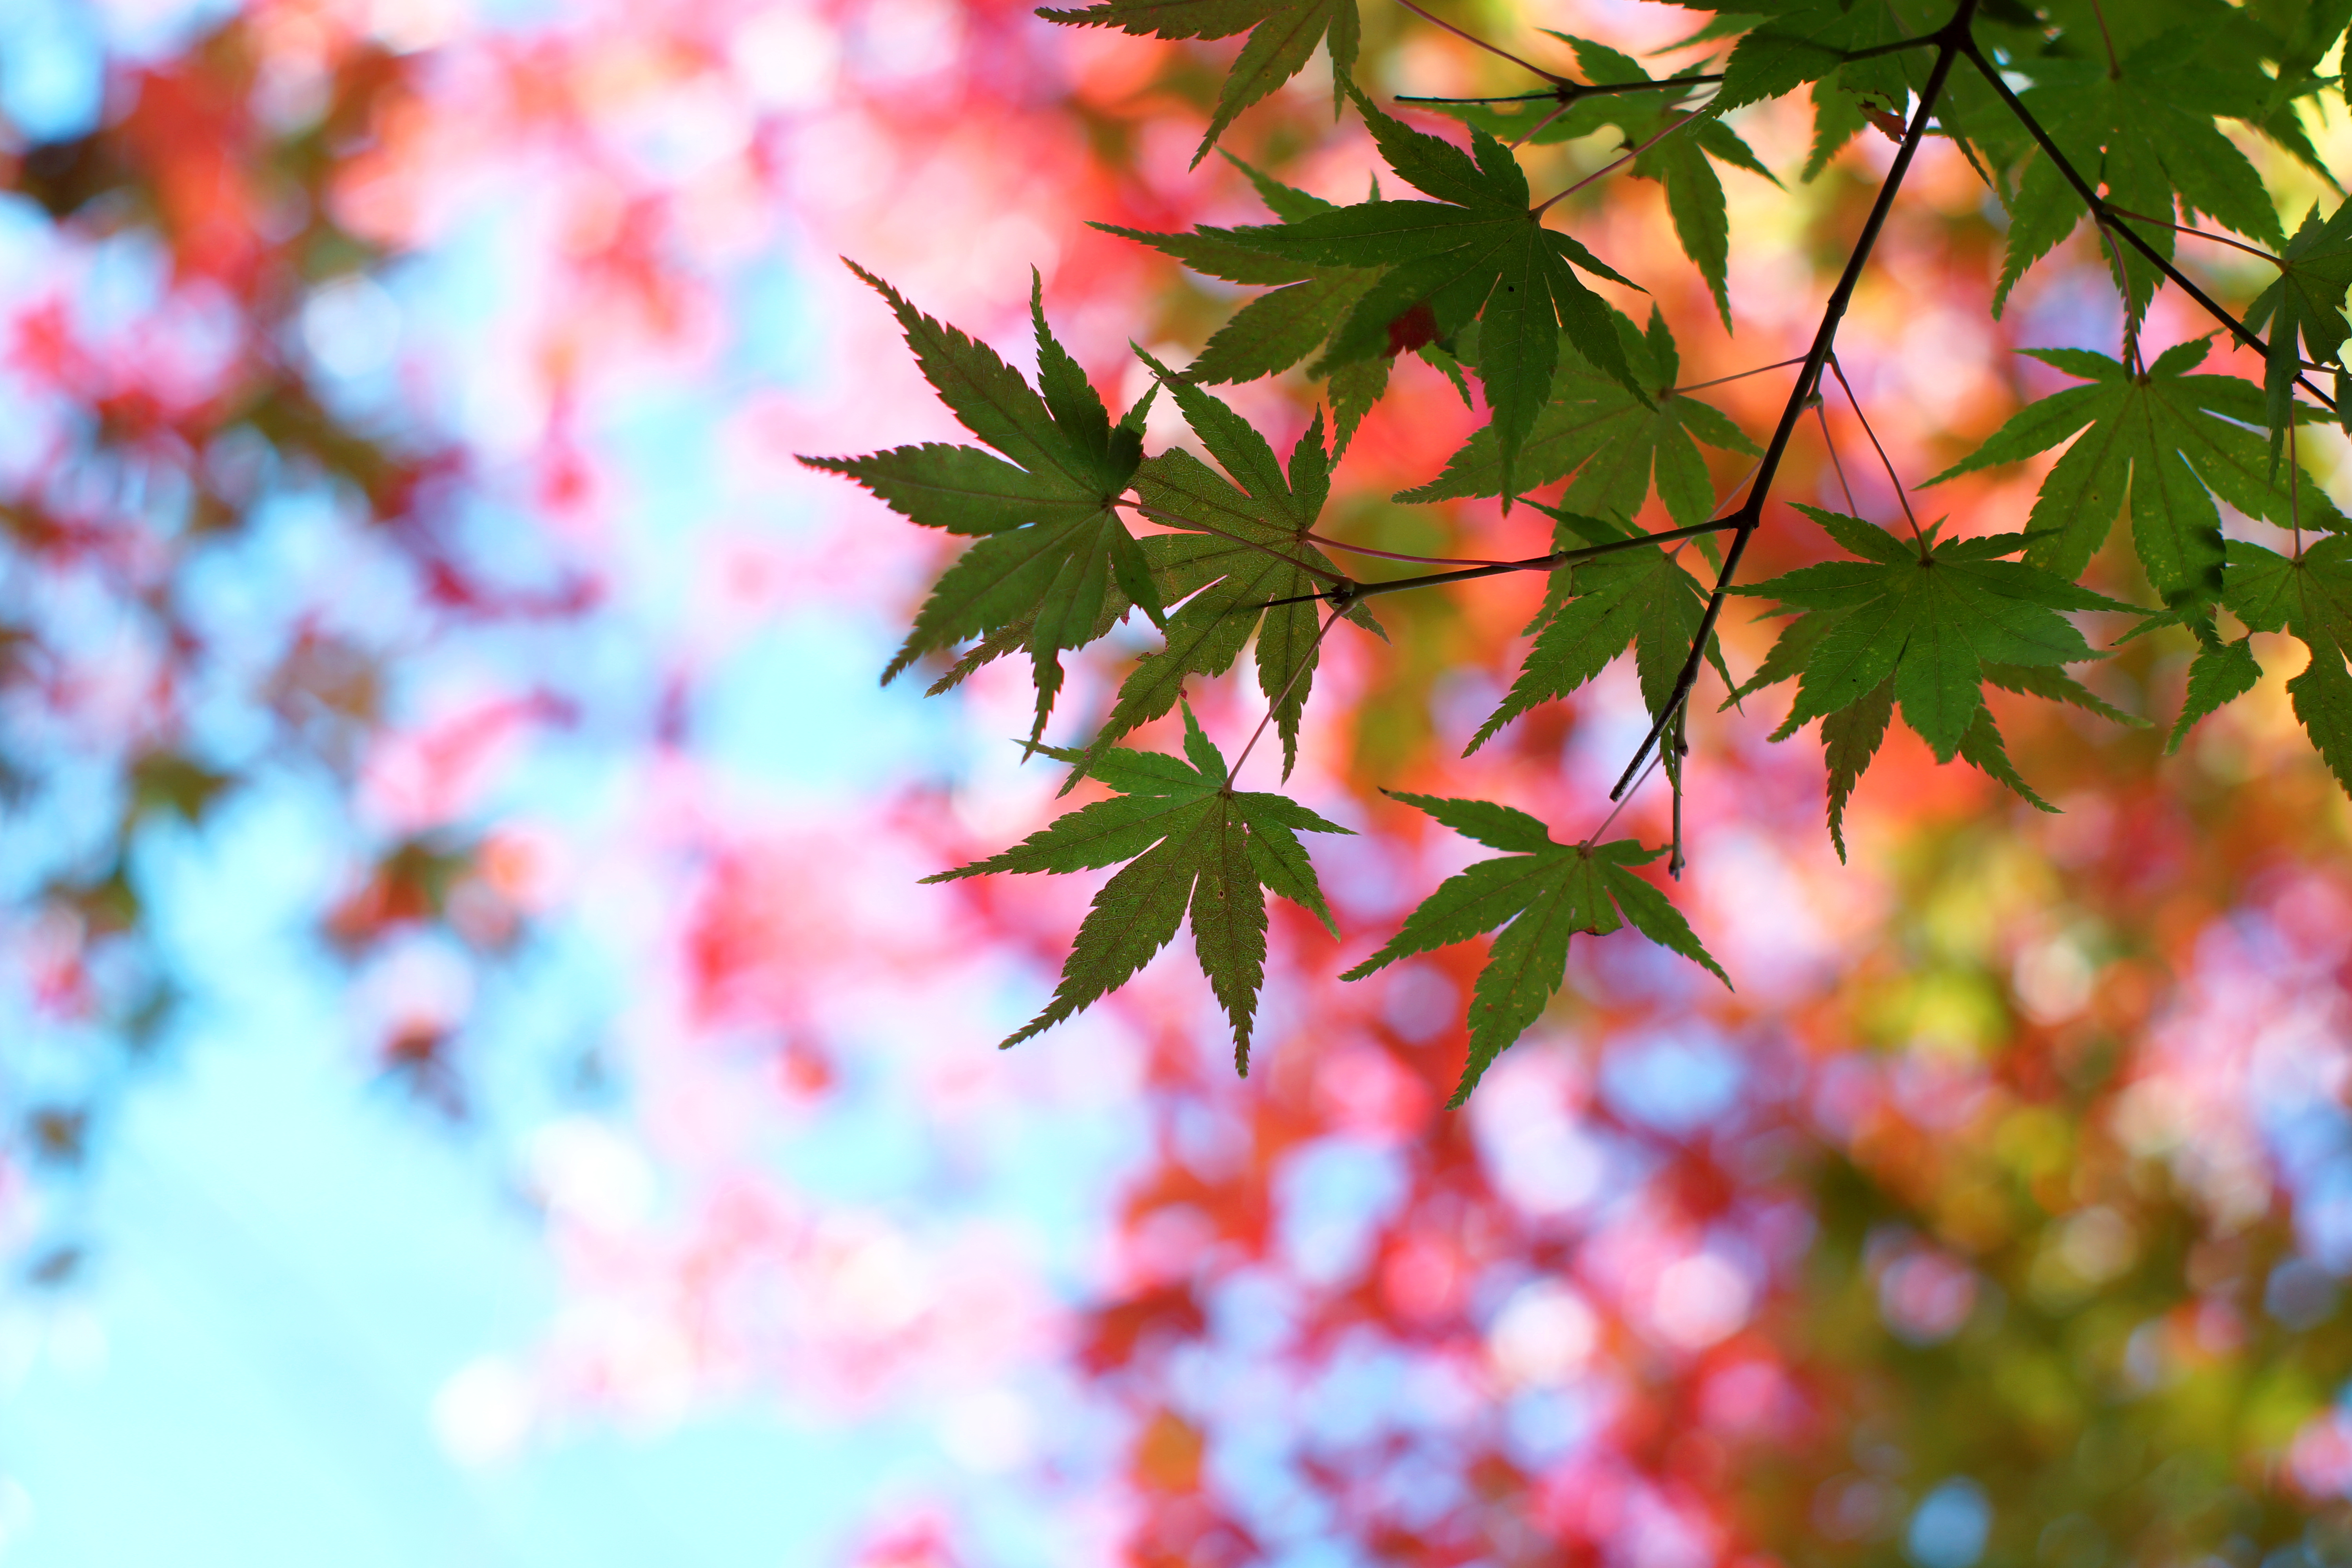 114854 download wallpaper Nature, Leaves, Maple, Glare, Branch, Wood, Tree, Summer screensavers and pictures for free